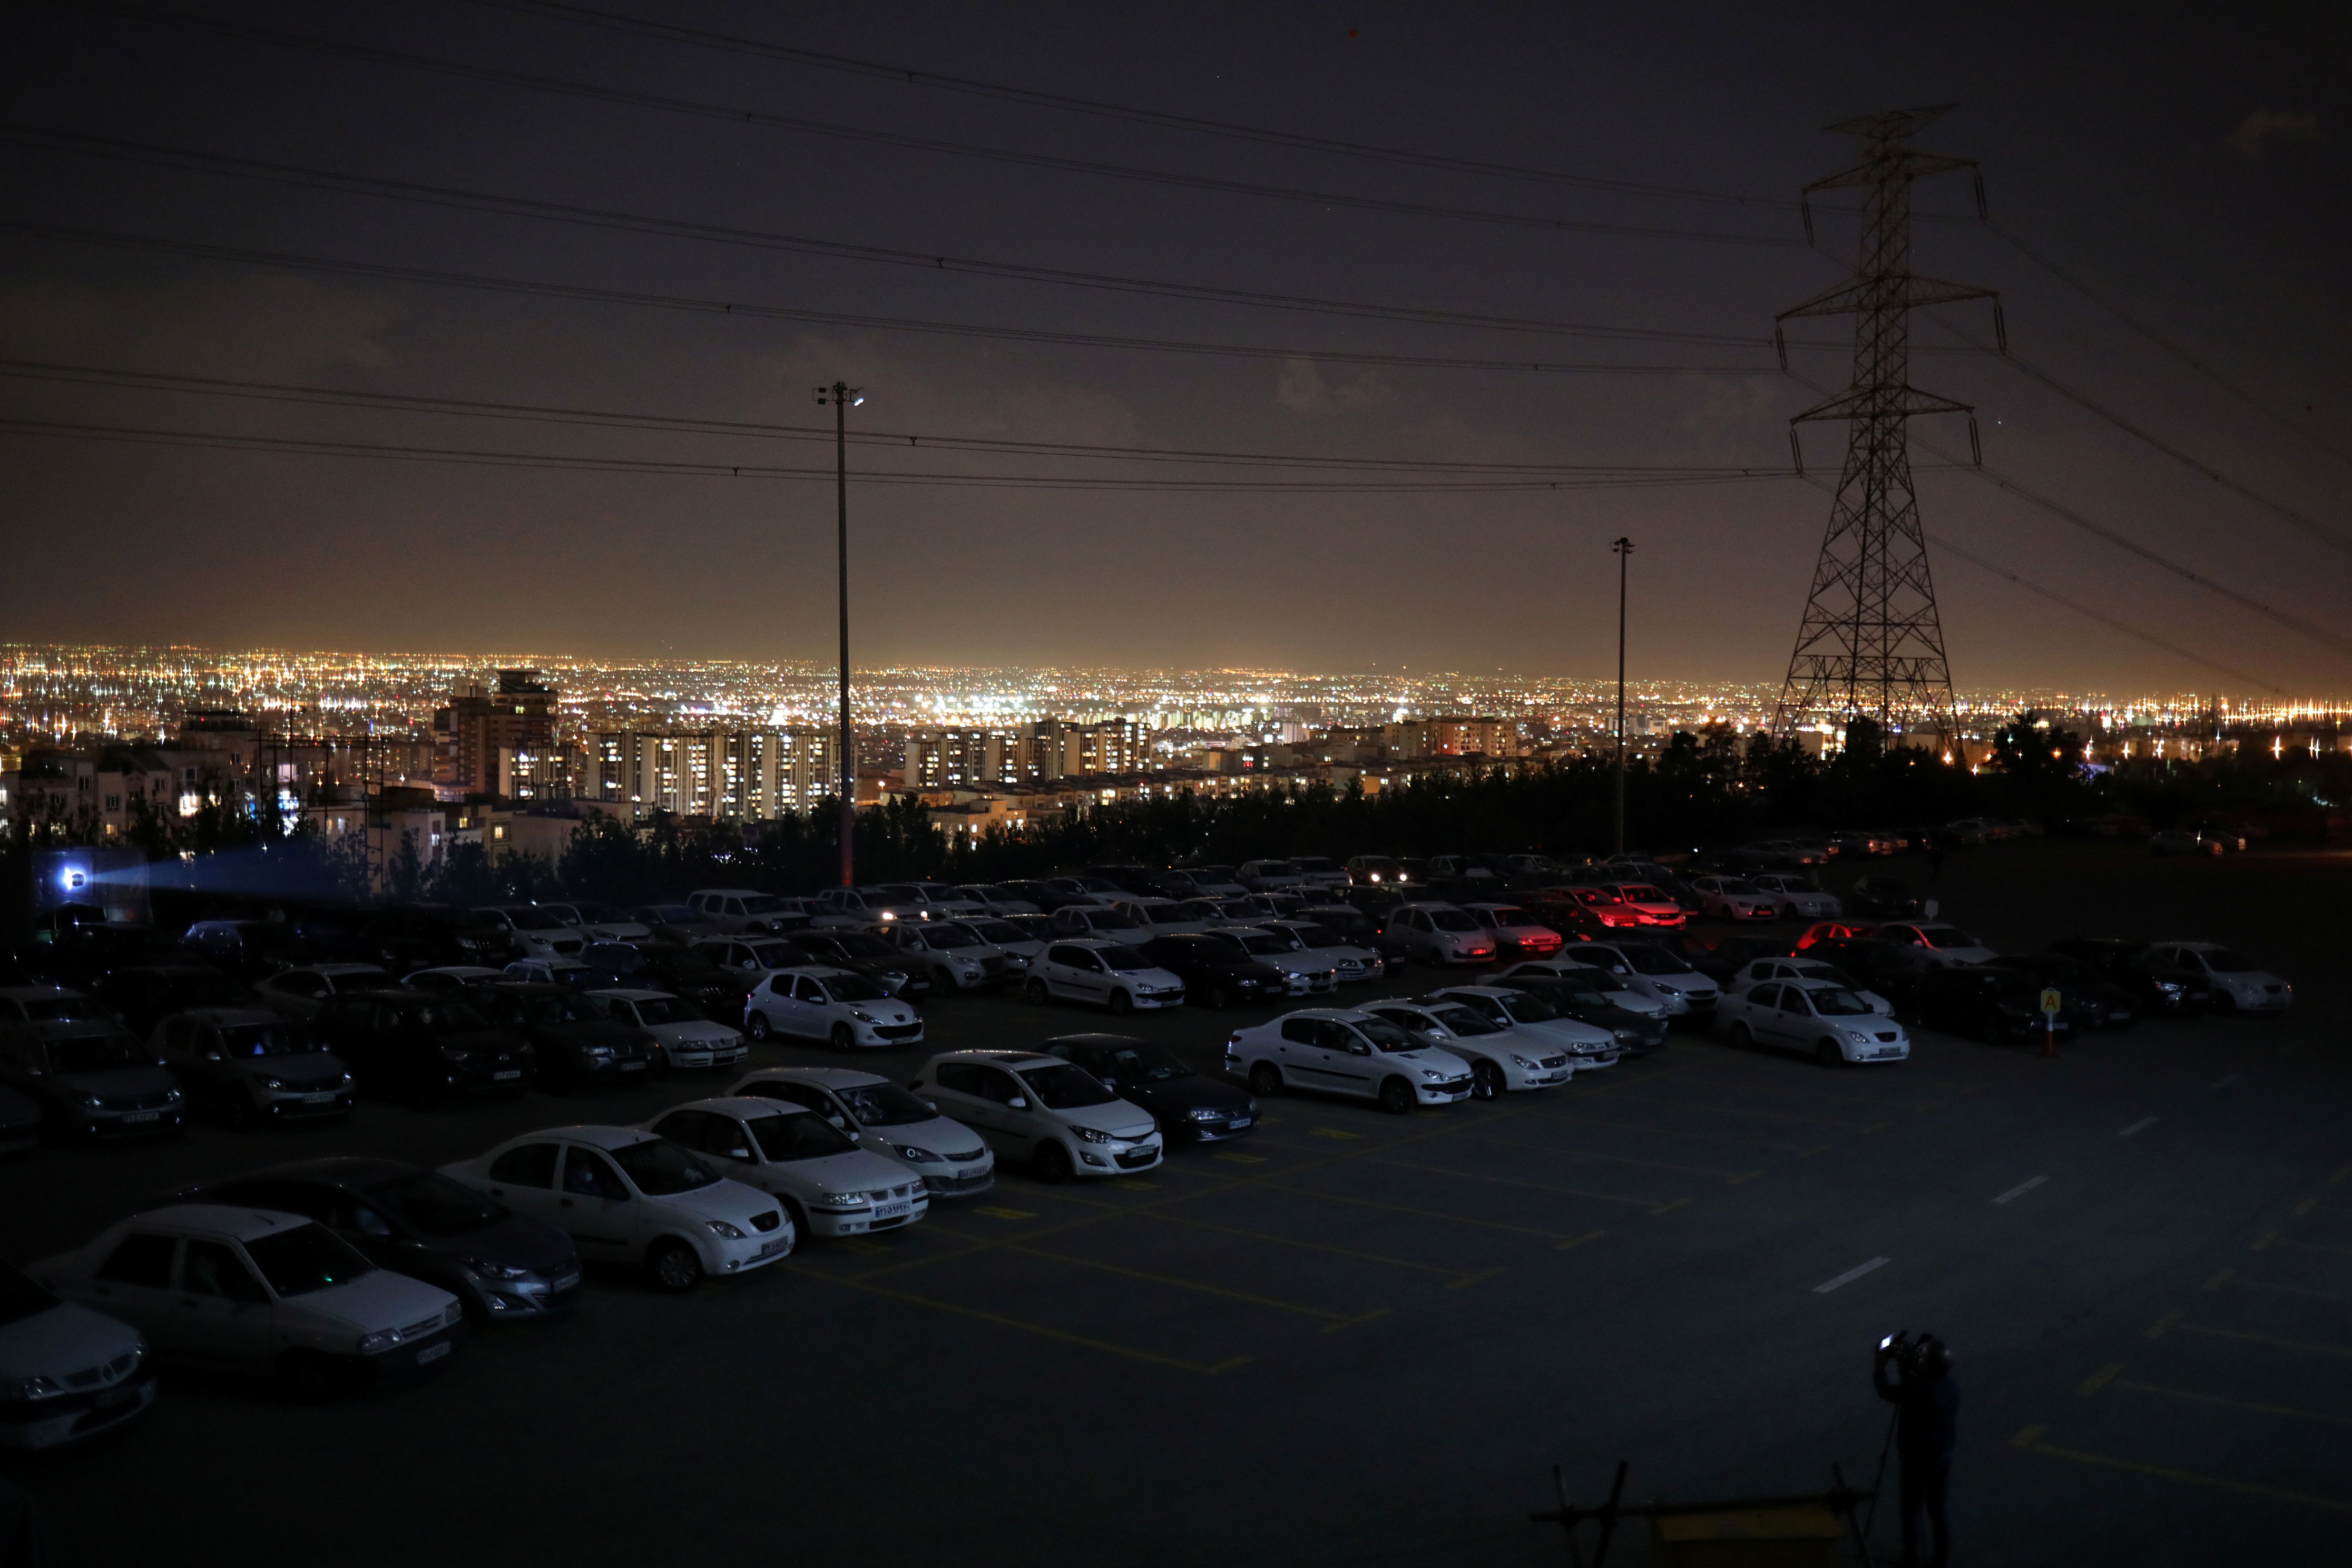 With stadiums shut and movie theaters closed, a drive-in theater now operates from a parking lot right under Tehran's iconic Milad tower, showing a film in line with the views of hard-liners.